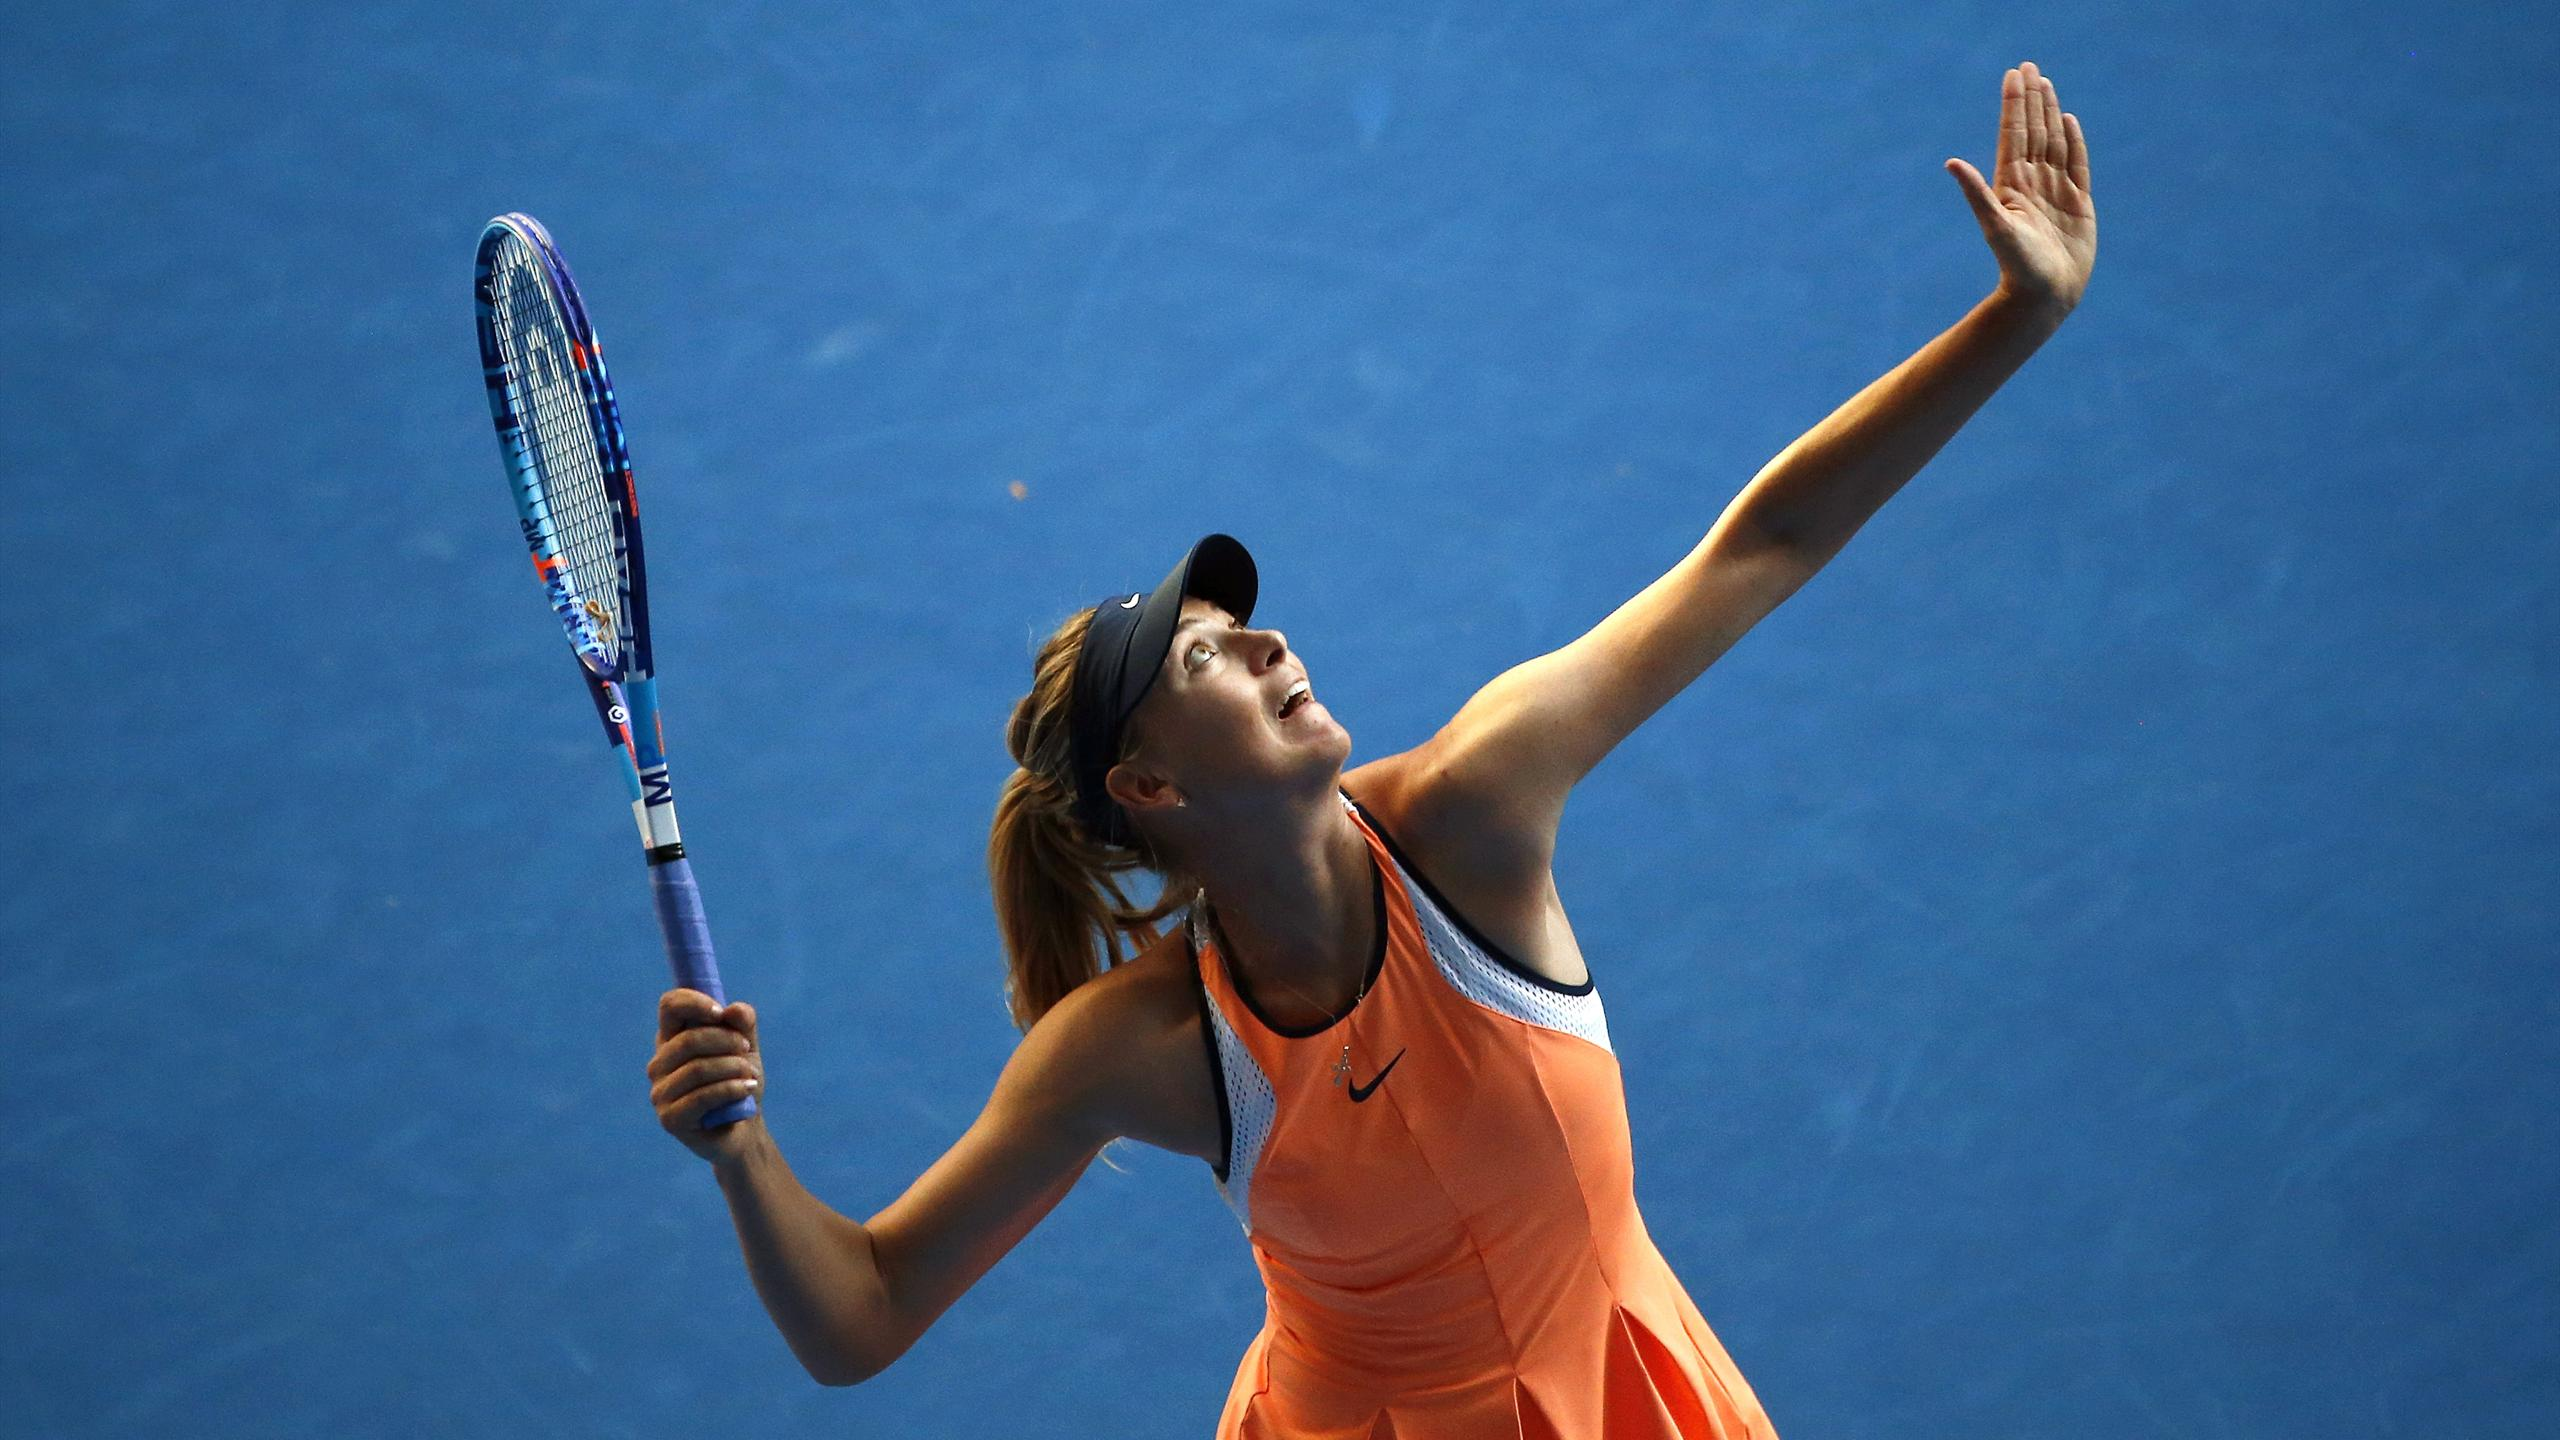 Maria Sharapova - Player Profile - Tennis - Eurosport